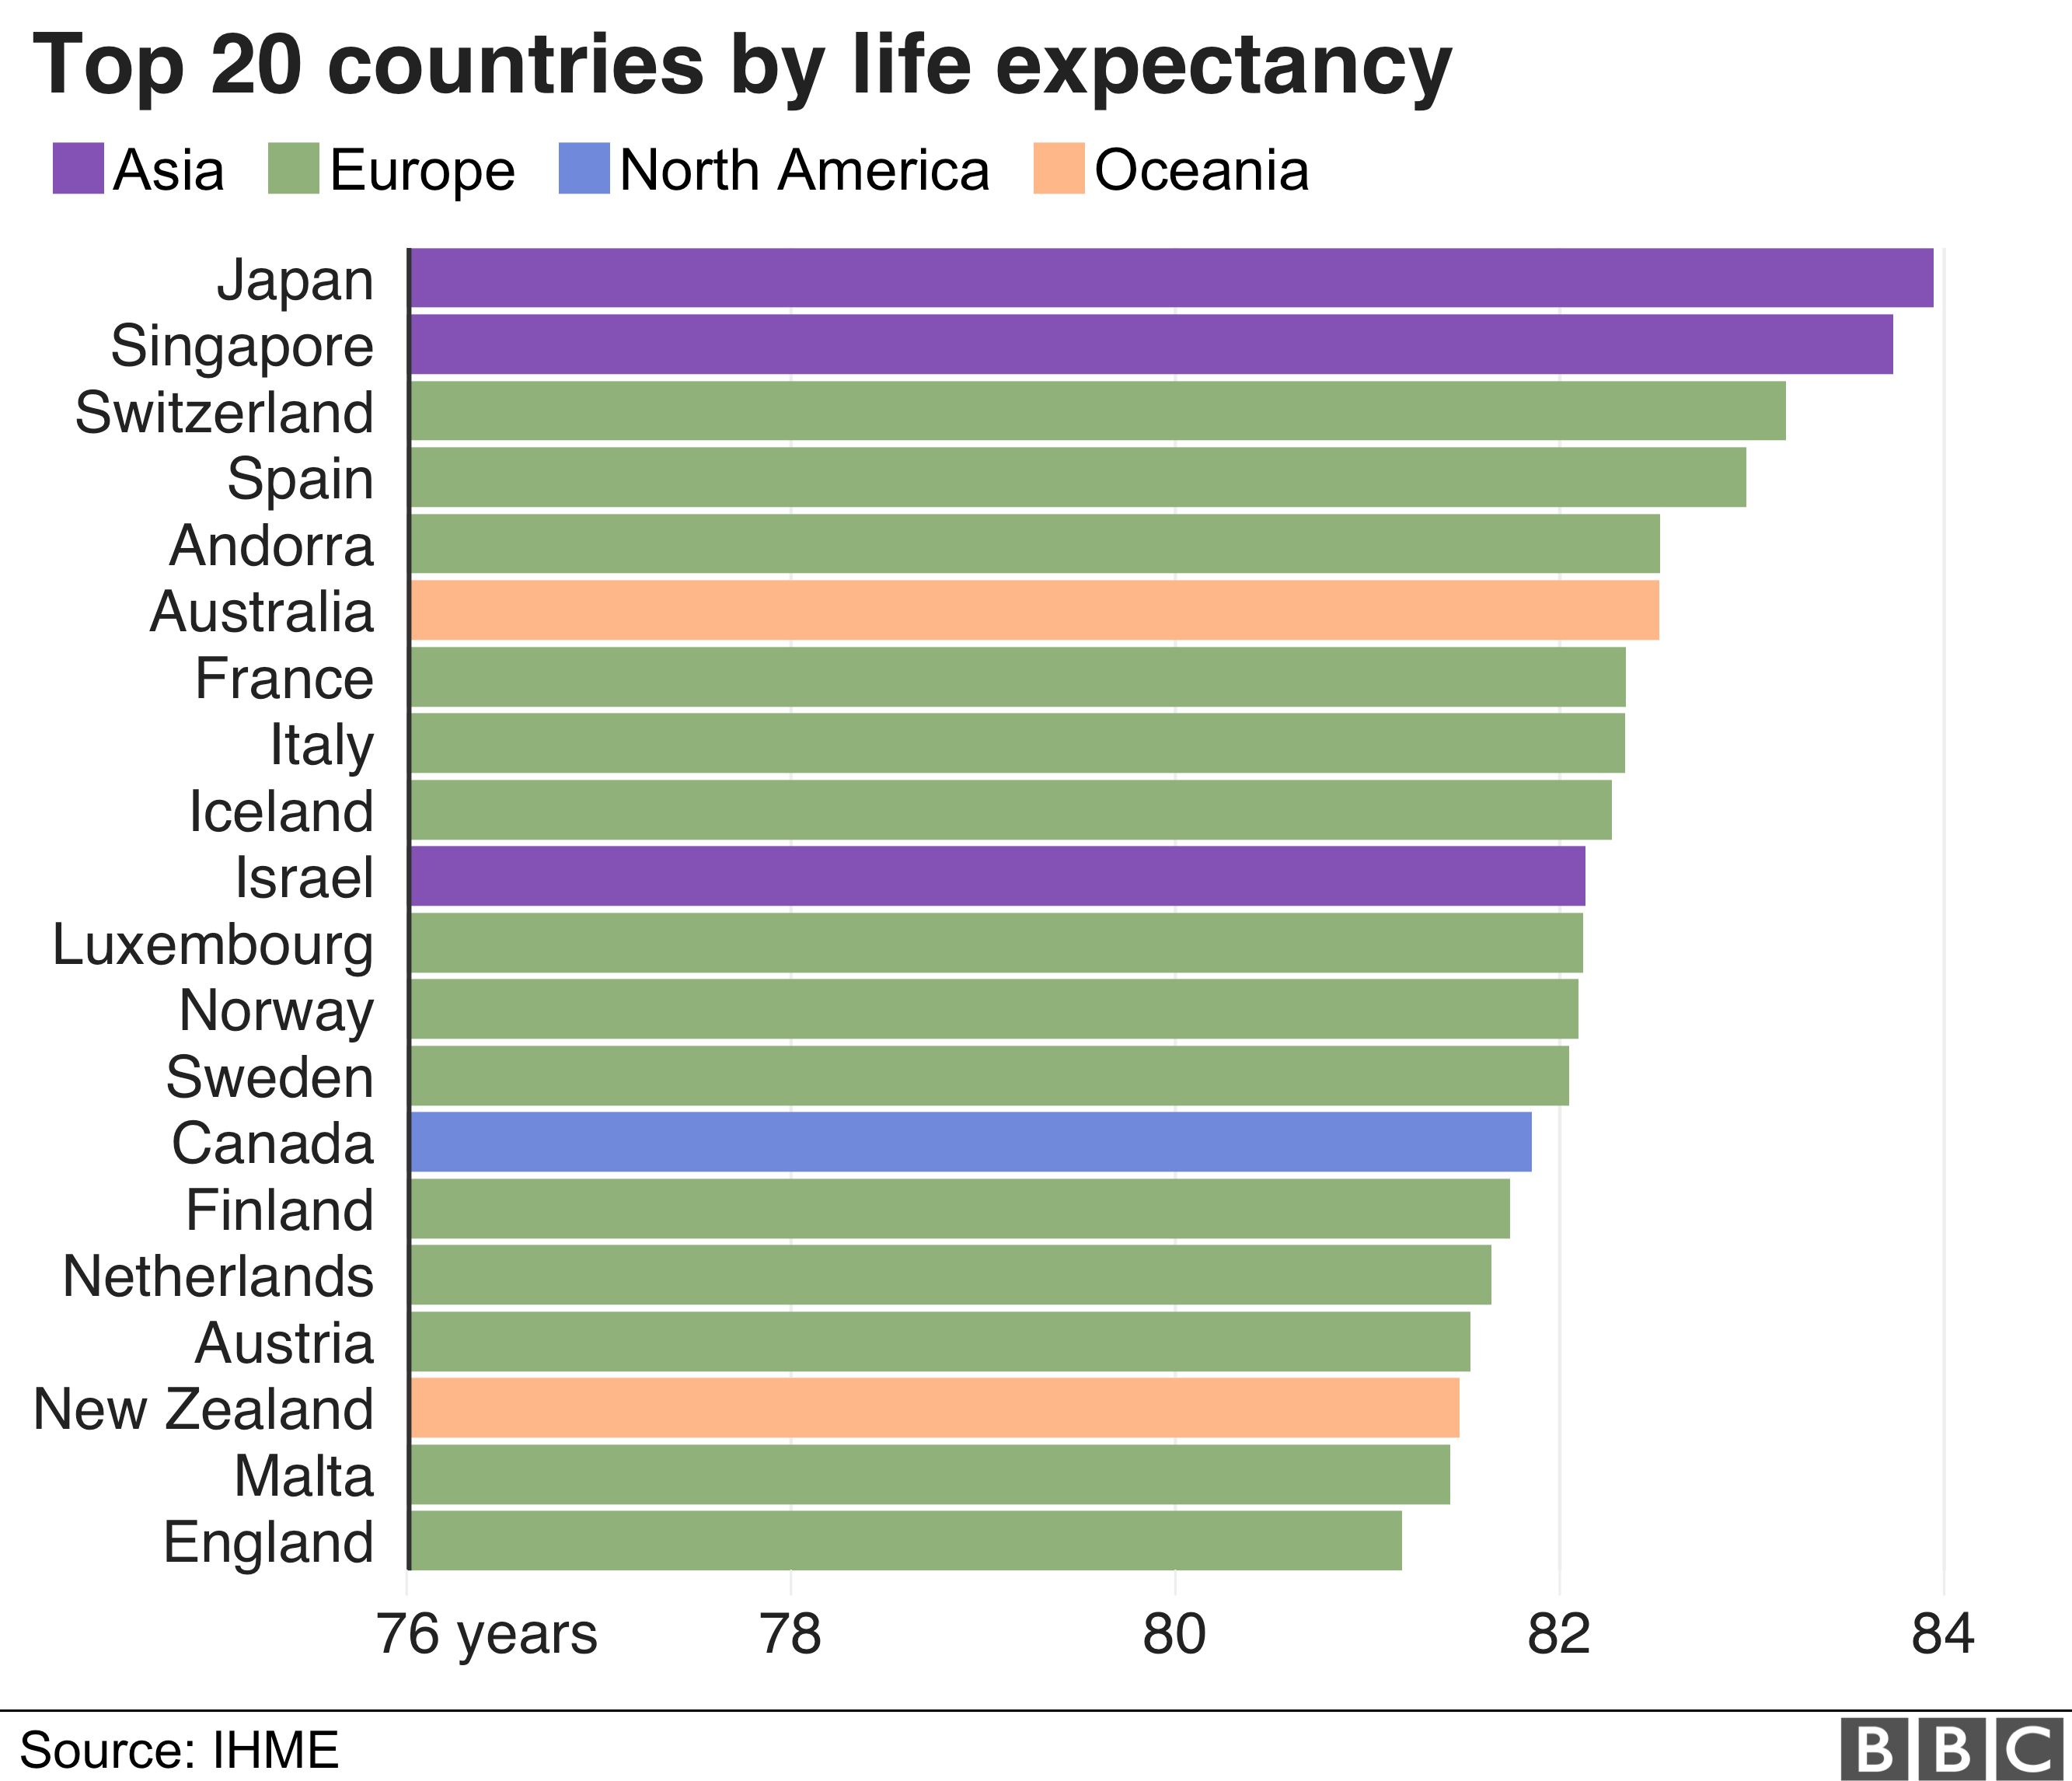 The top 20 countries in terms of life expectancy are mostly Western European countries